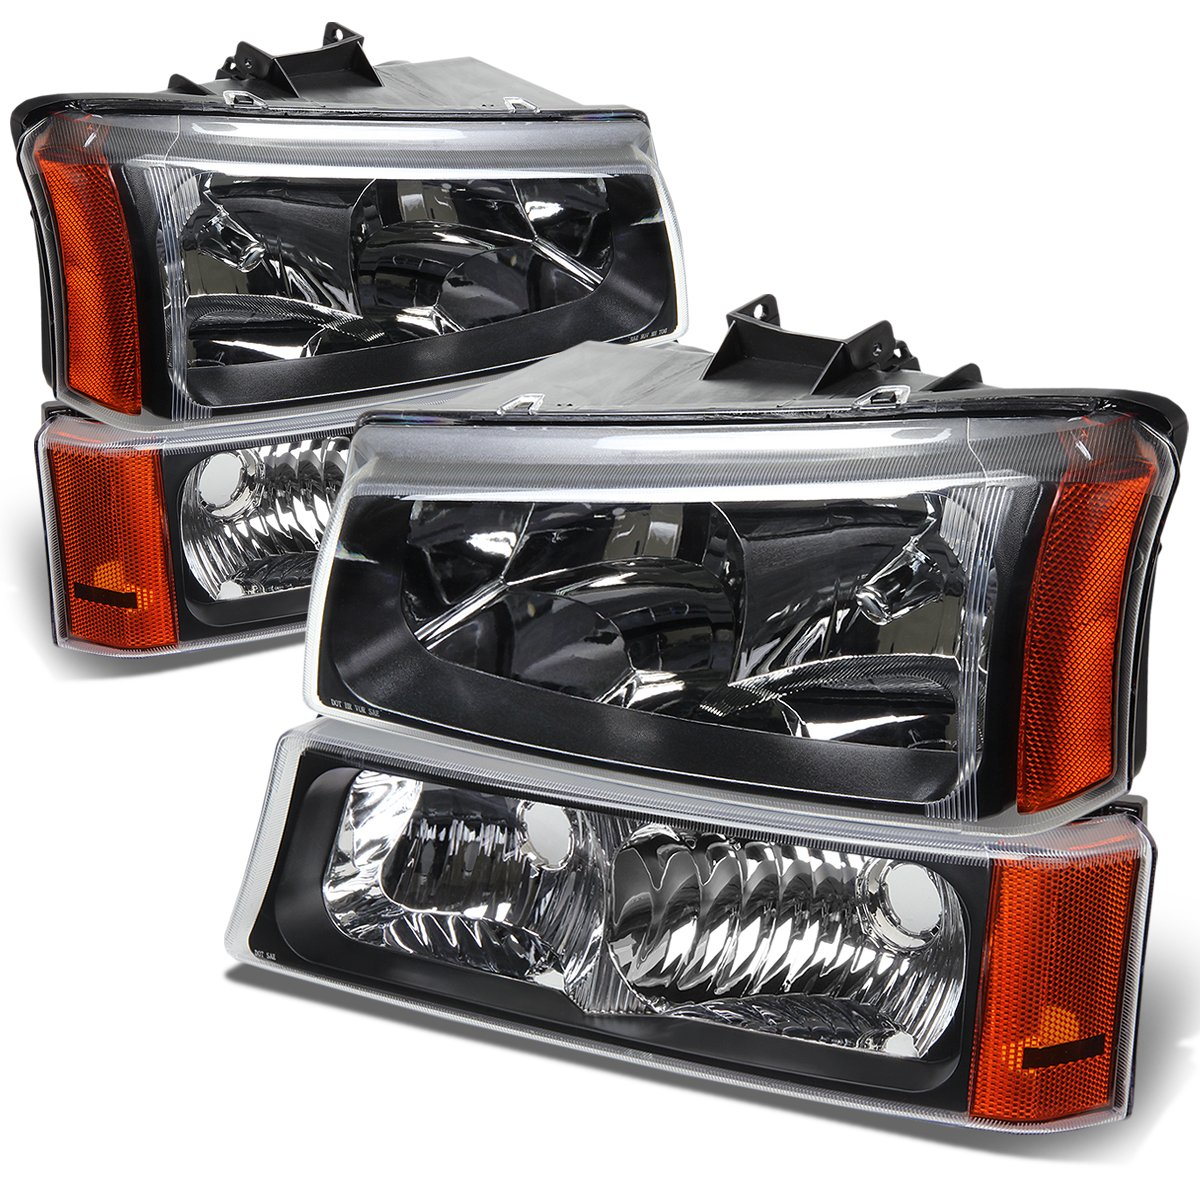 DNA Motoring HL-OH-CS03-4P-BK-AM Headlight Assembly, Driver and Passenger Side